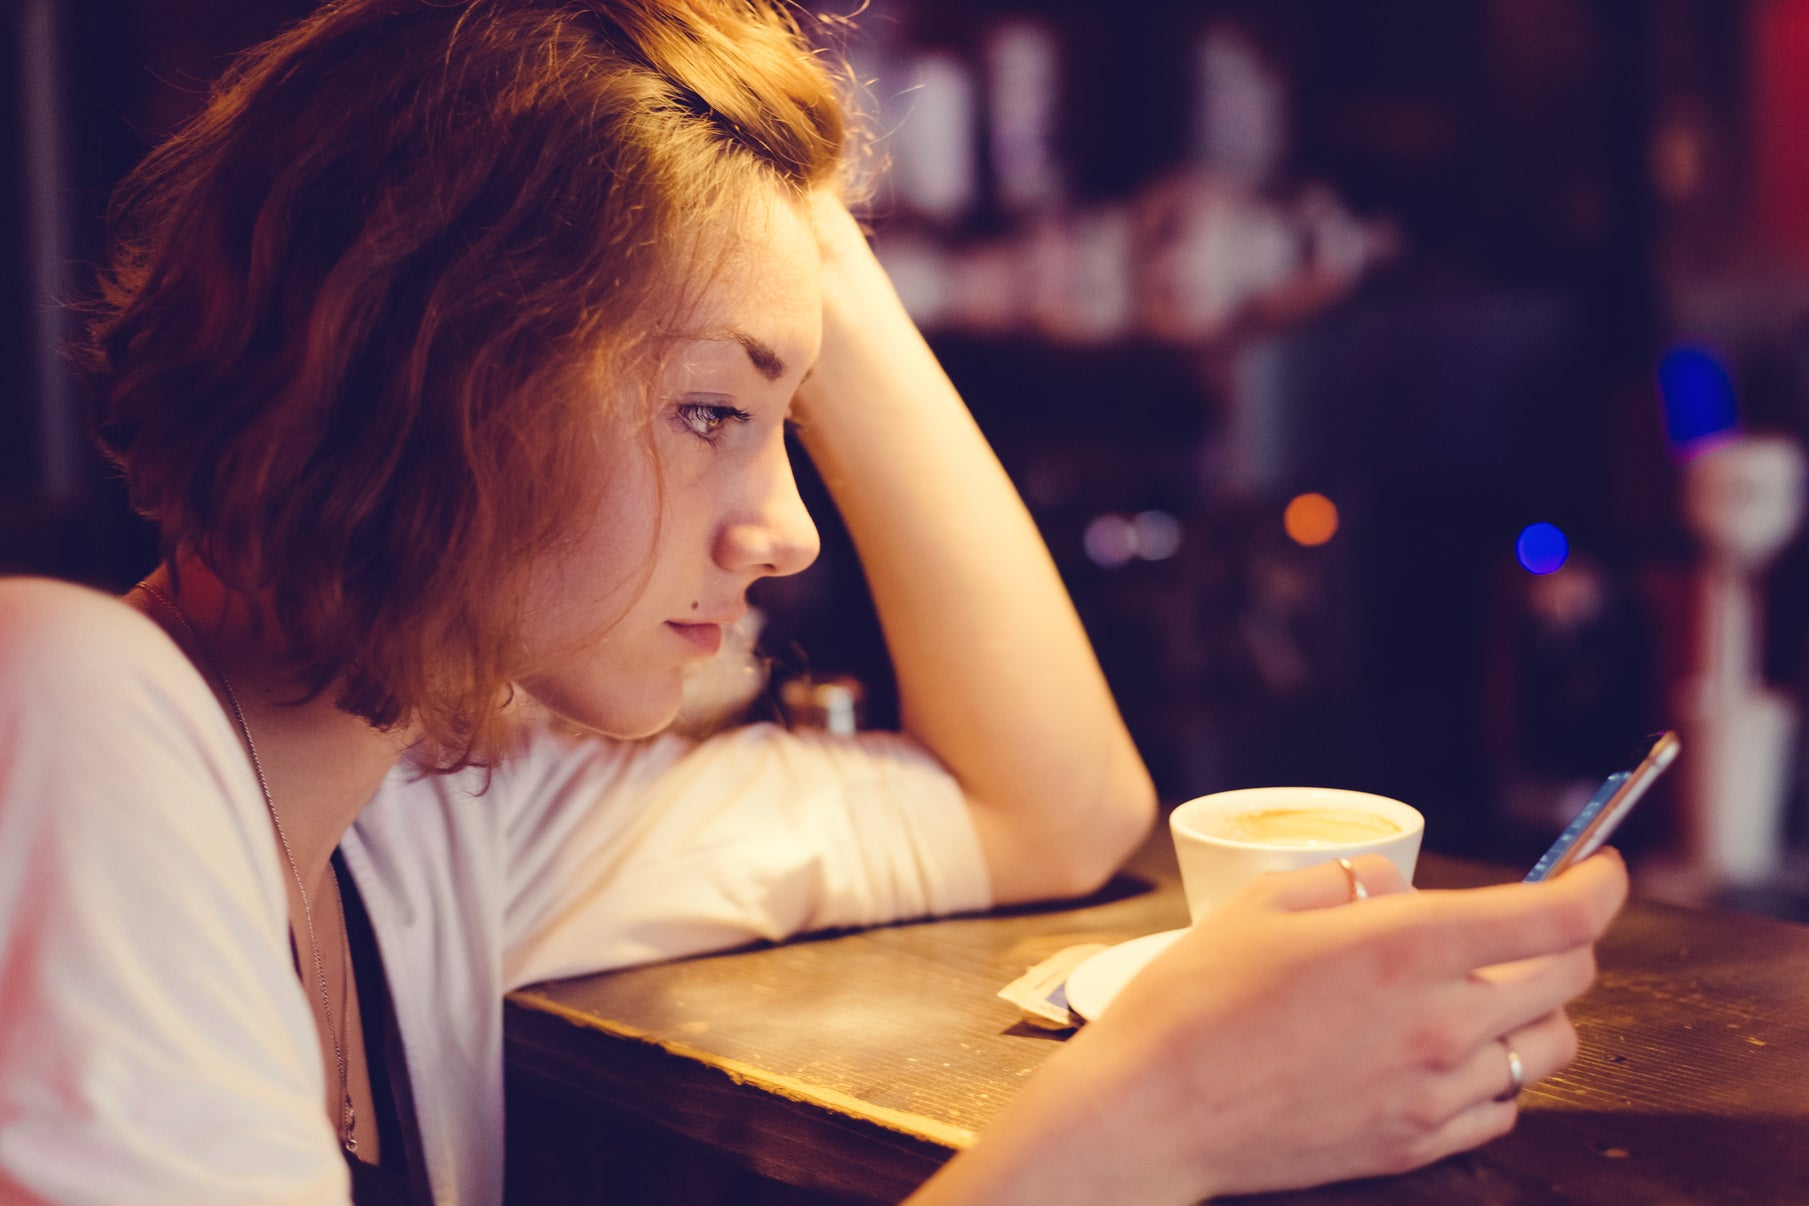 Brexit is Less Stressful than Losing your Smartphone, Study Finds